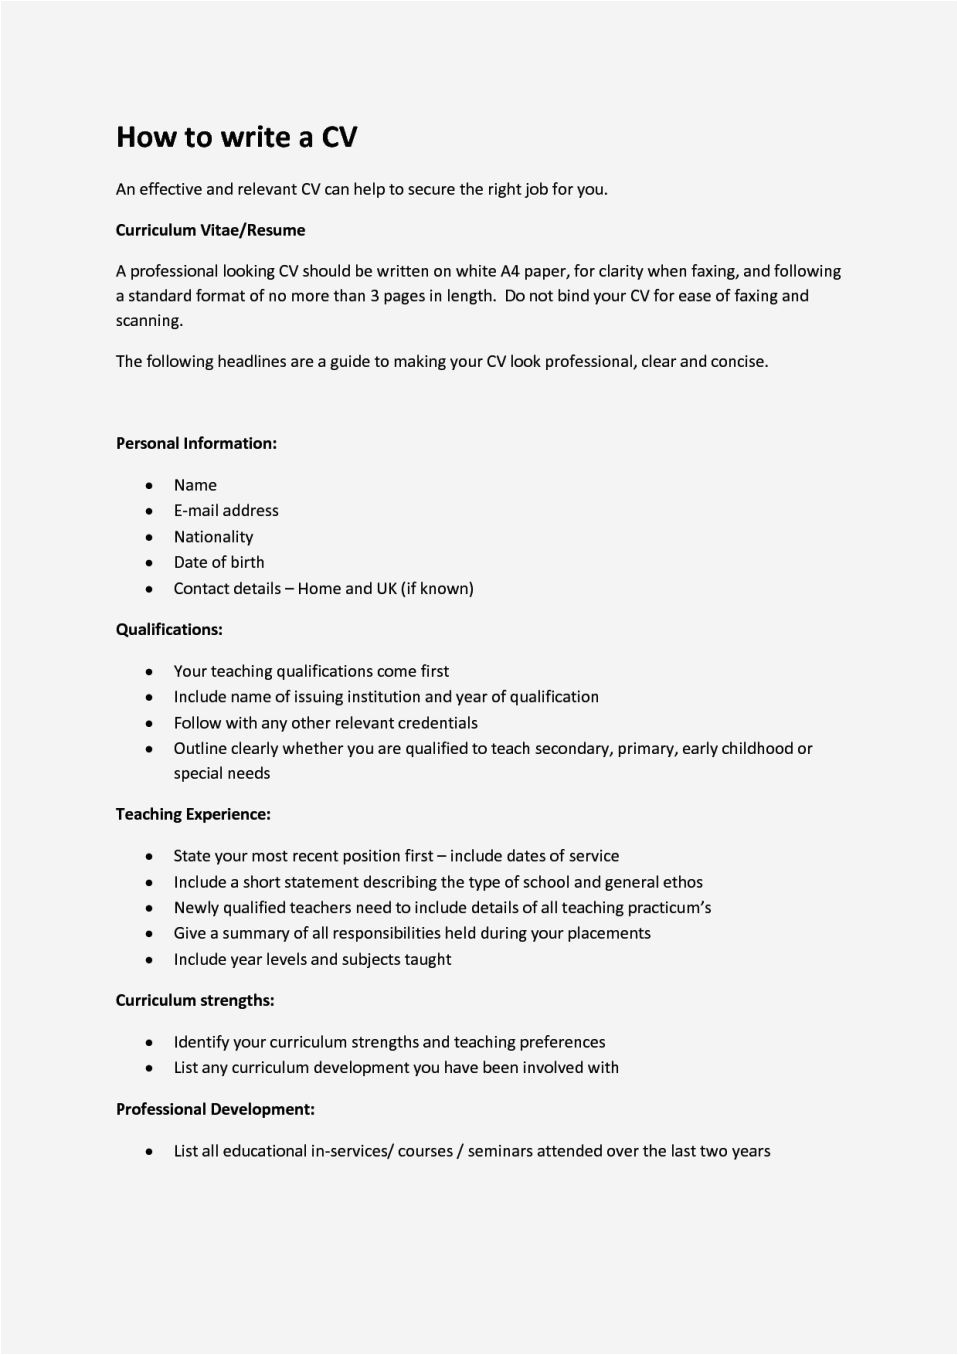 How to Write Covering Letter with Cv How to Write A Cv for A 16 Year Old with No Experience Uk